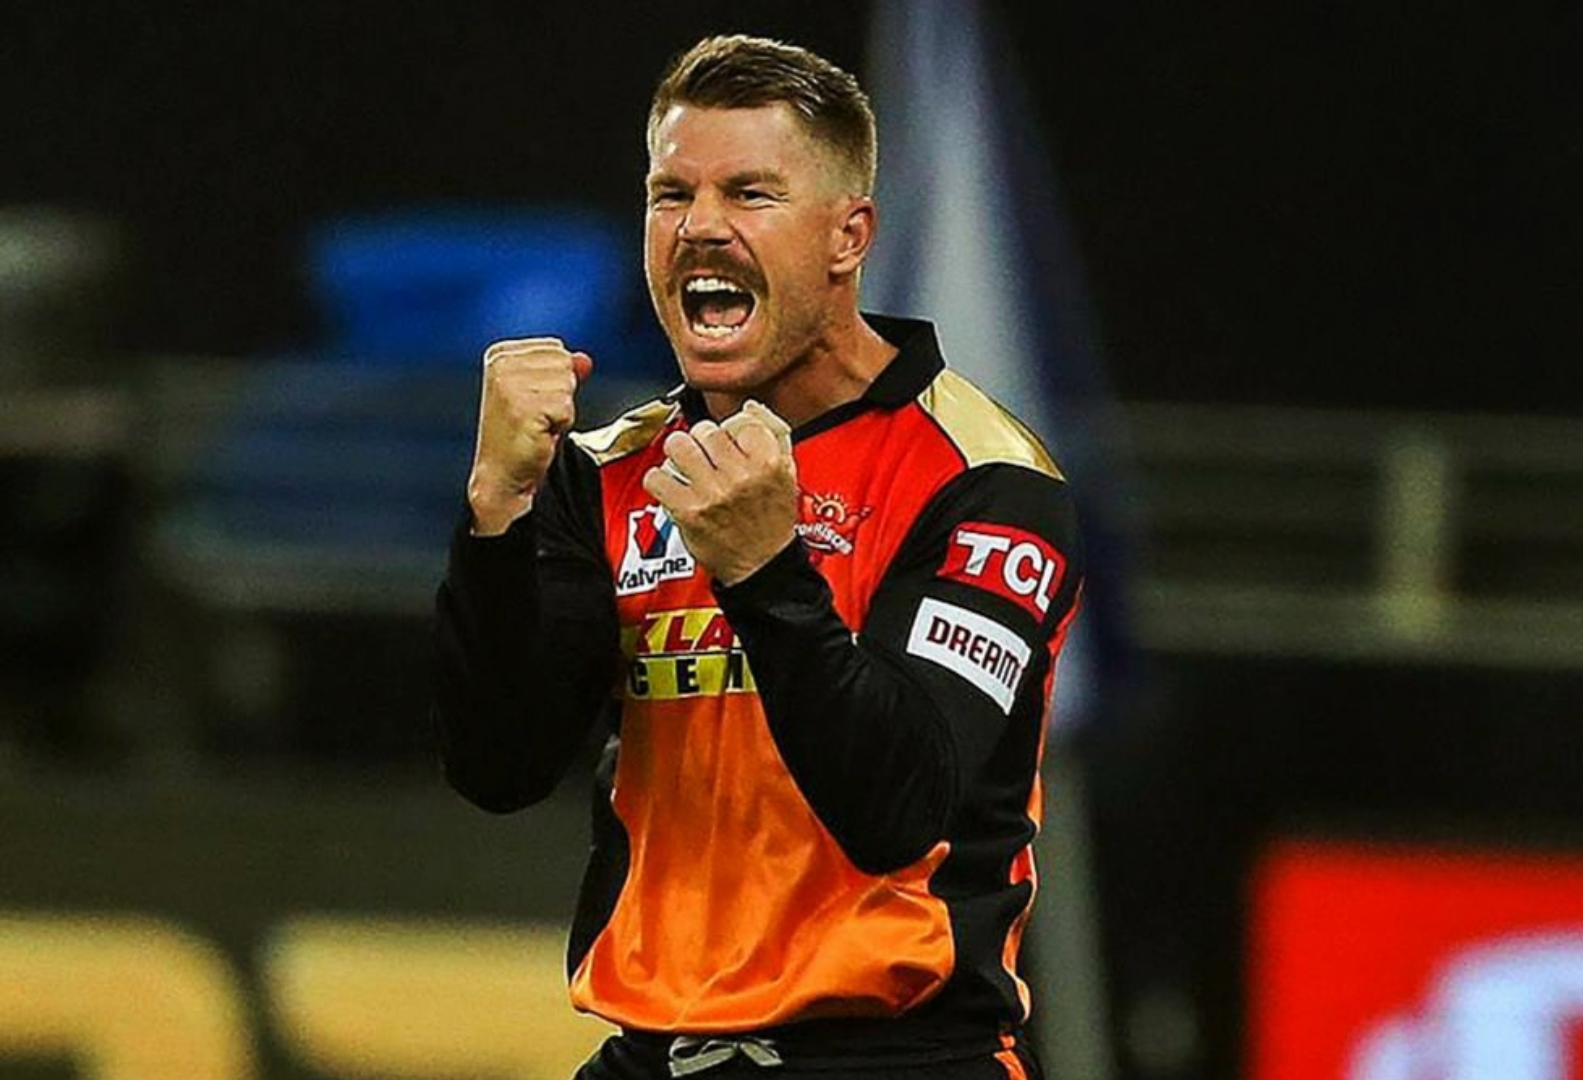 IPL RCBvsSRH AB de Villiers Shouts Run Out As Warner Faces Free Hit